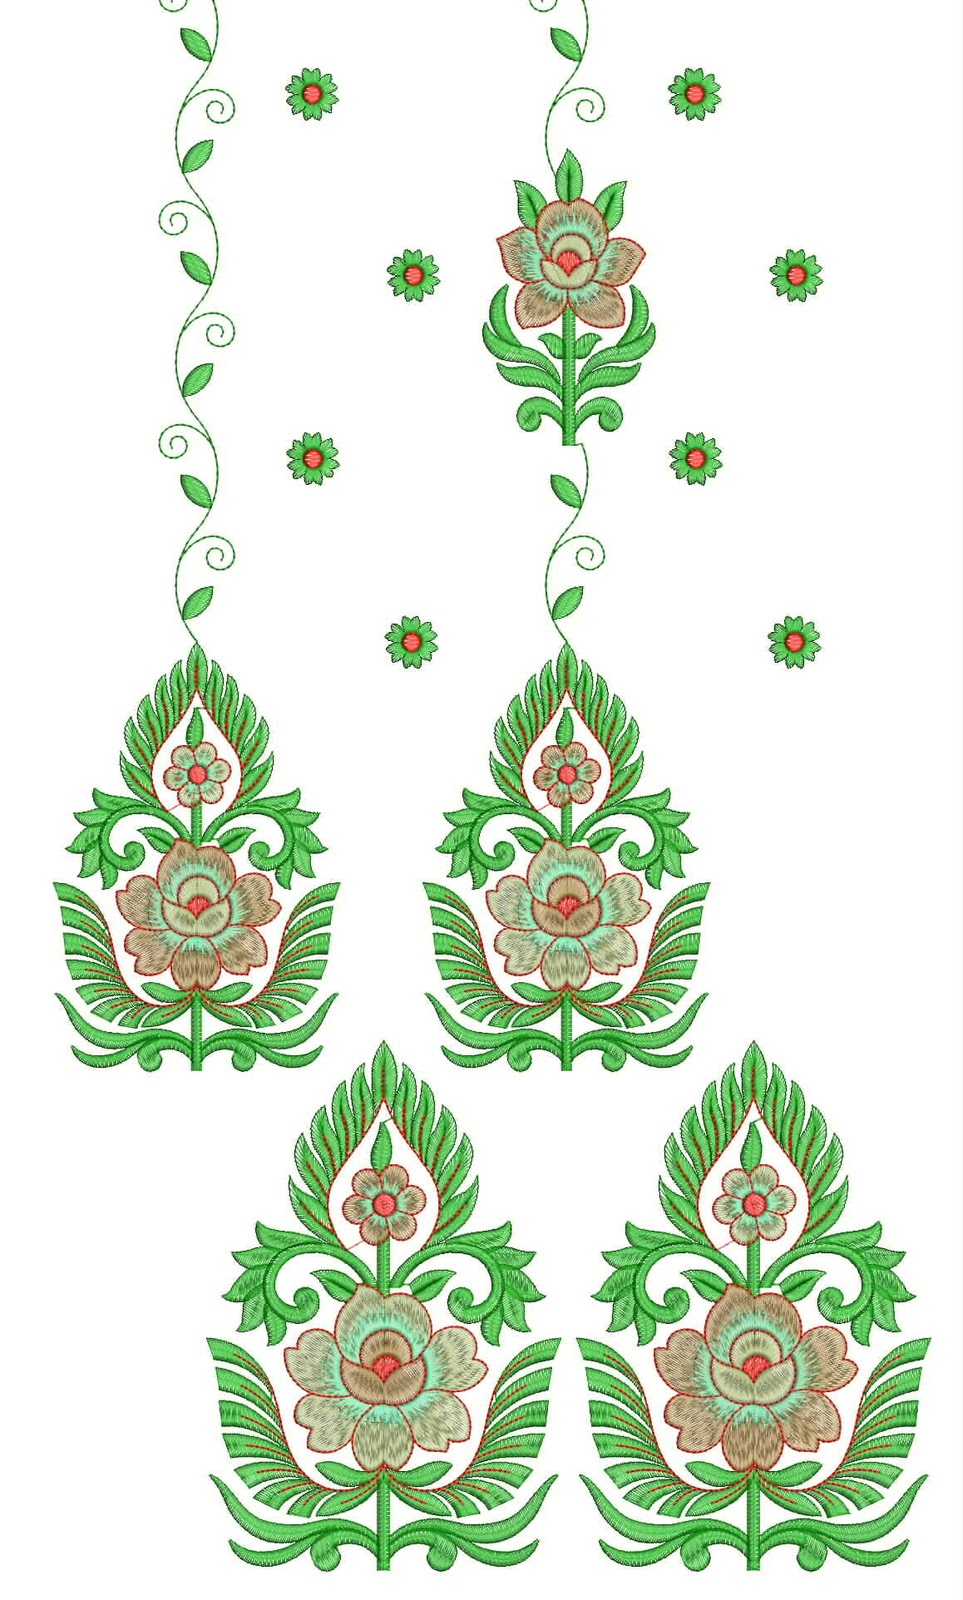 Fashion embroidery designs free embroidery patterns Fashion embroidery designs